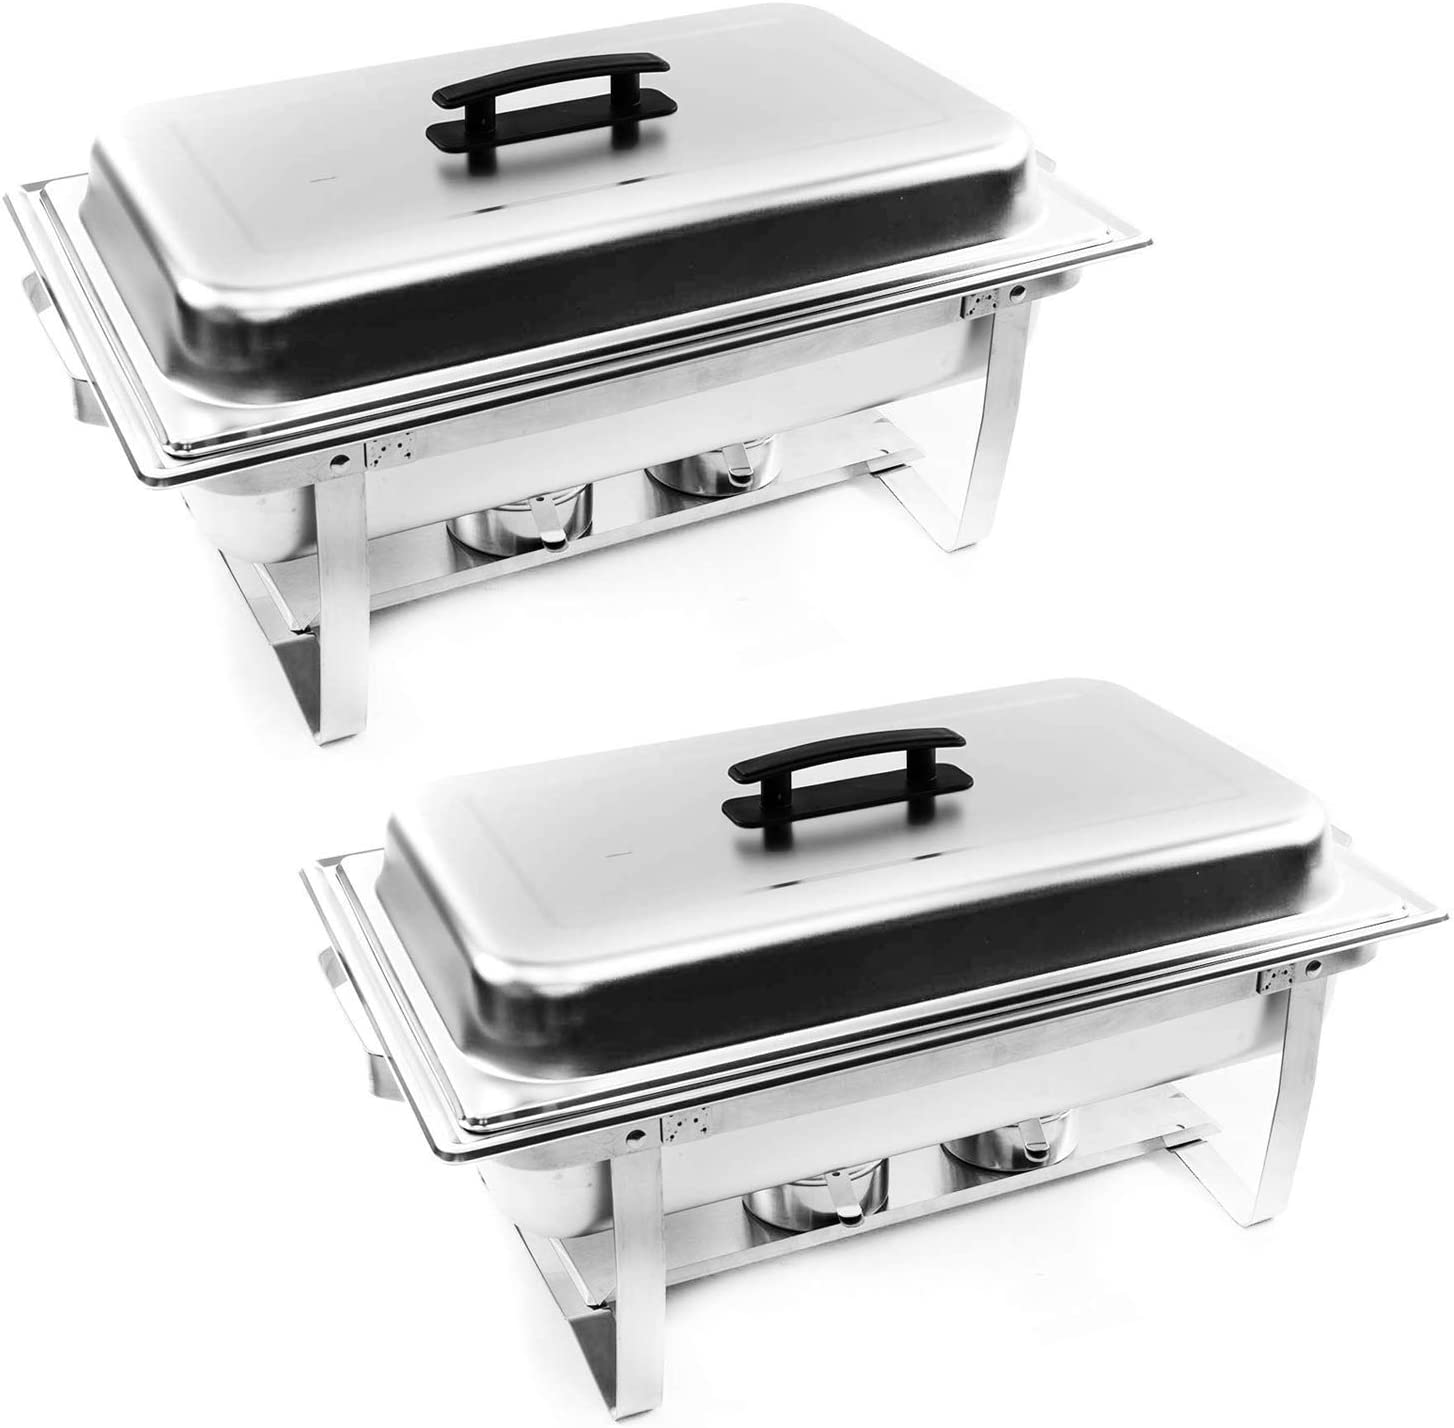 ALPHA LIVING 70012 2 Pack 8QT Chafing Dish High Grade Stainless Steel Chafer Complete Set, One Pack, white